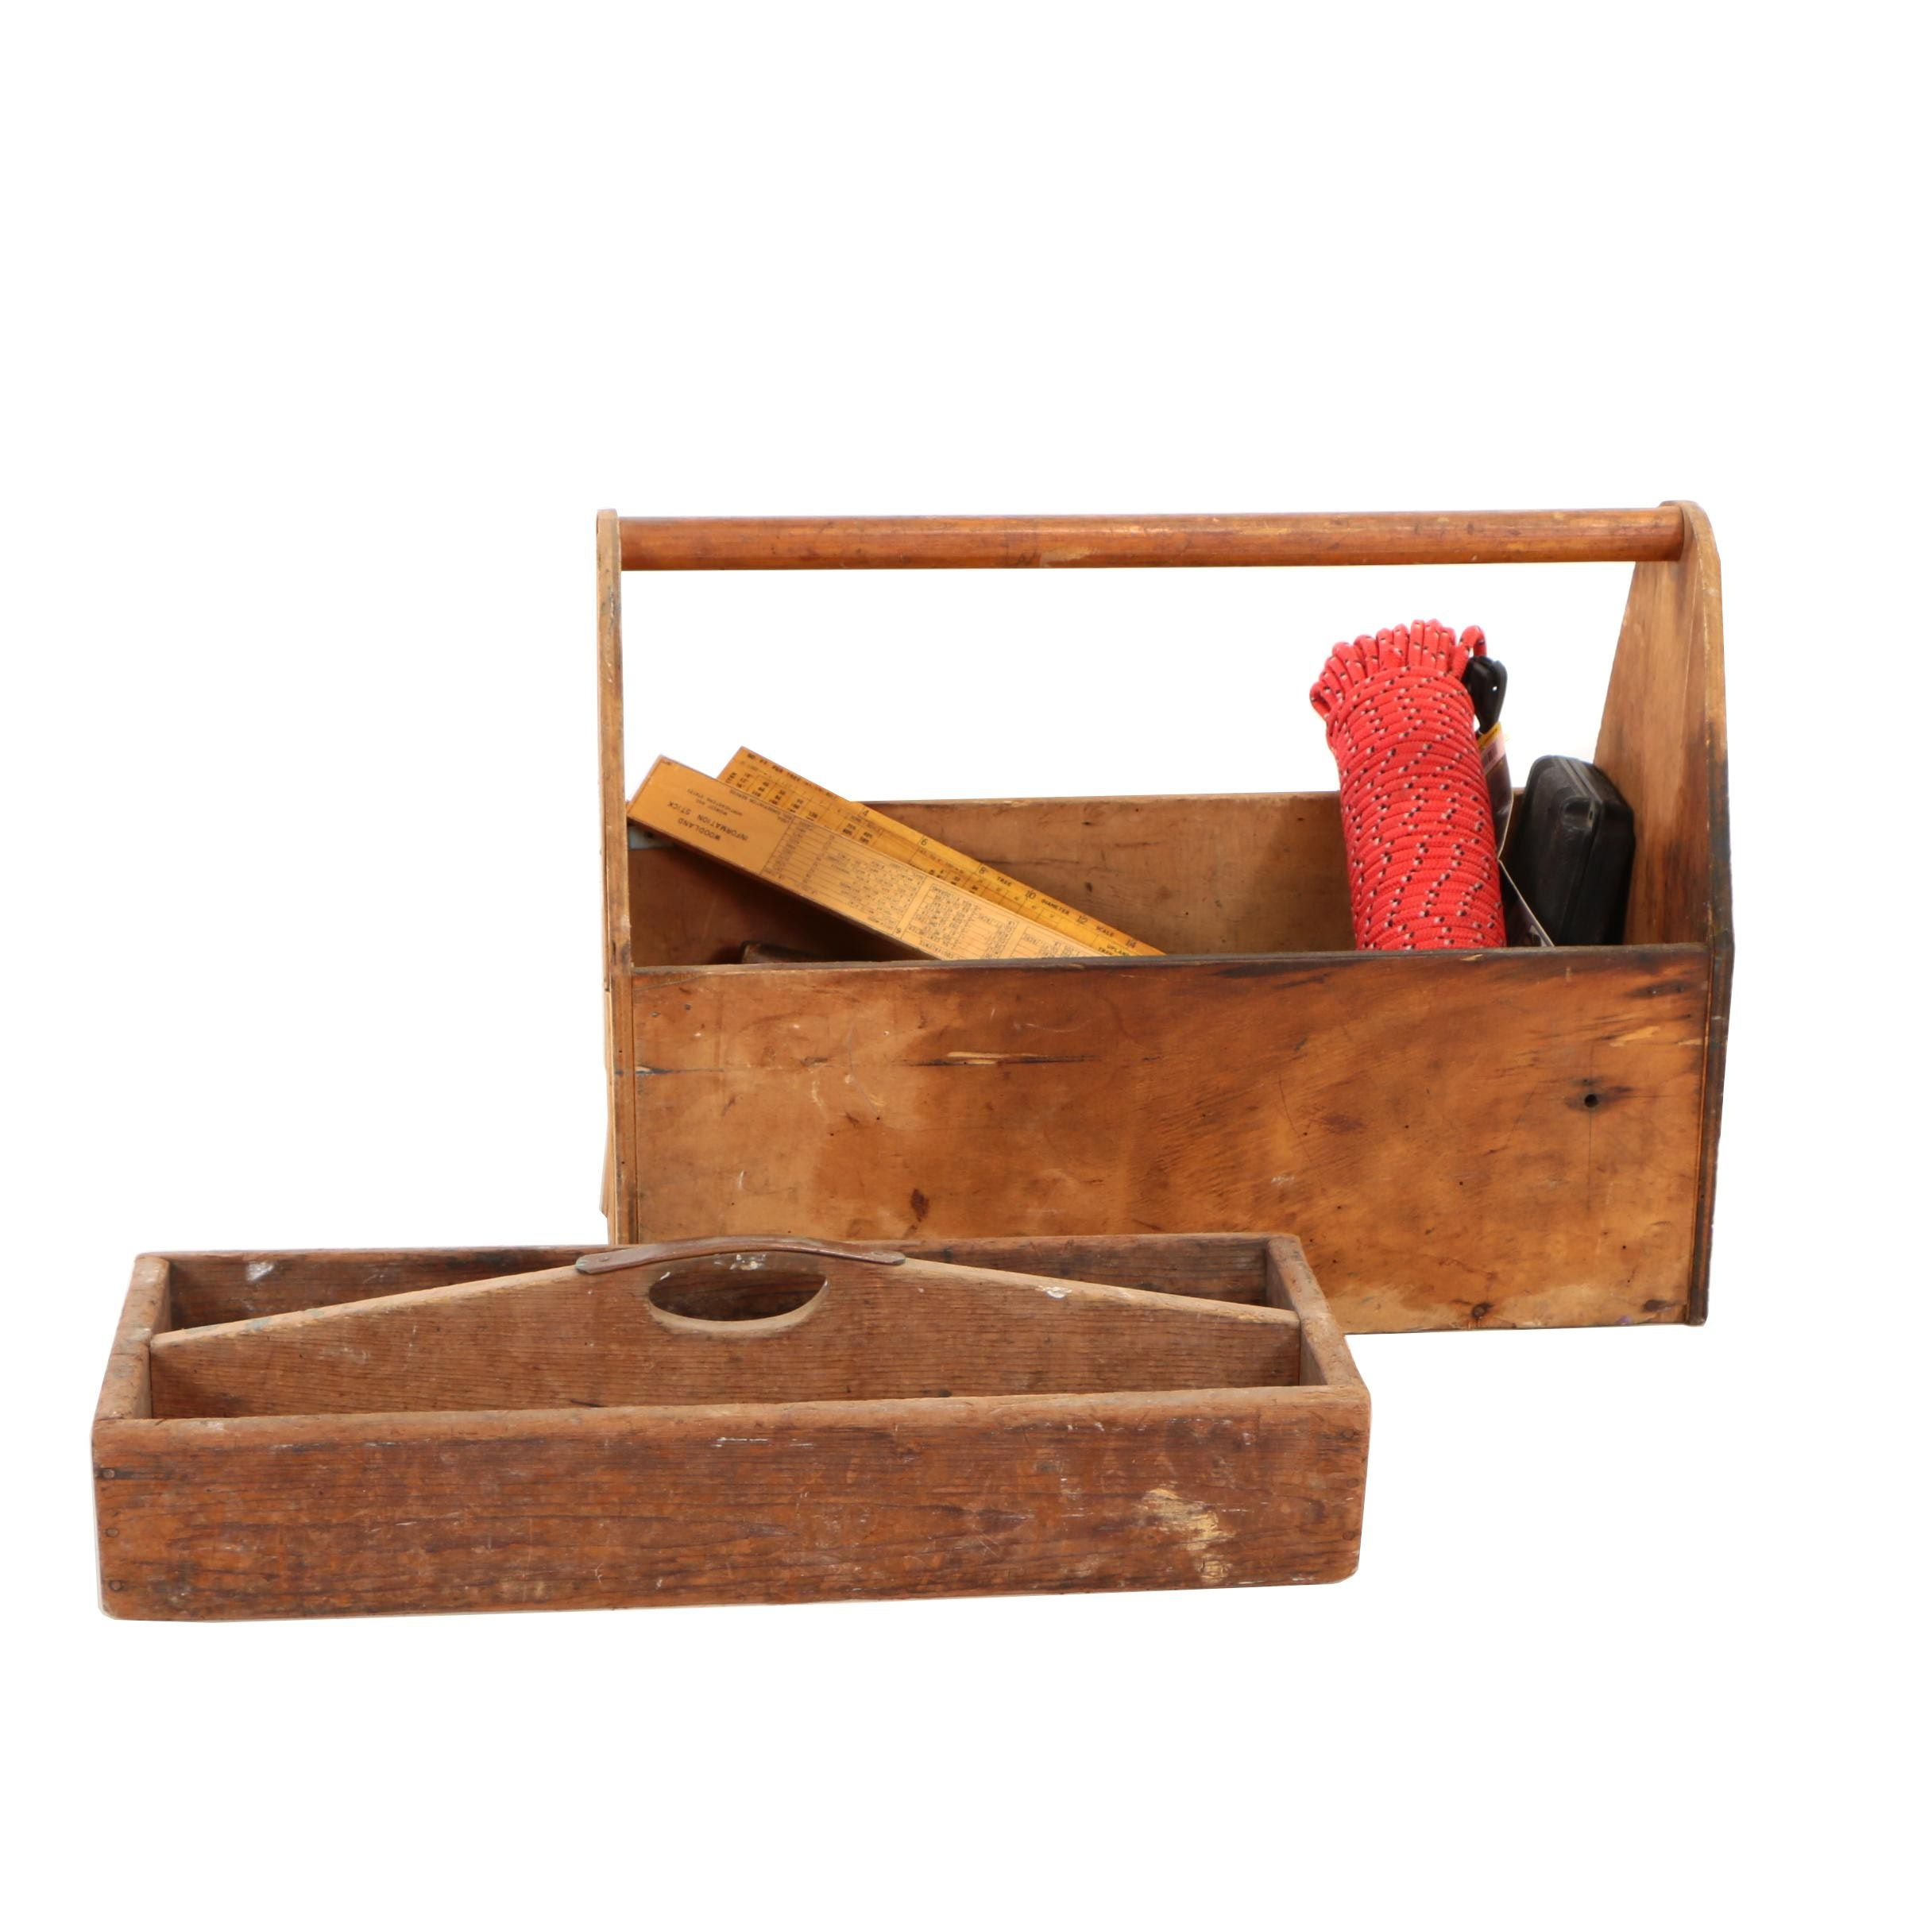 Wooden Tool Caddys with Various Tools Including Stanley, Walworth, and More